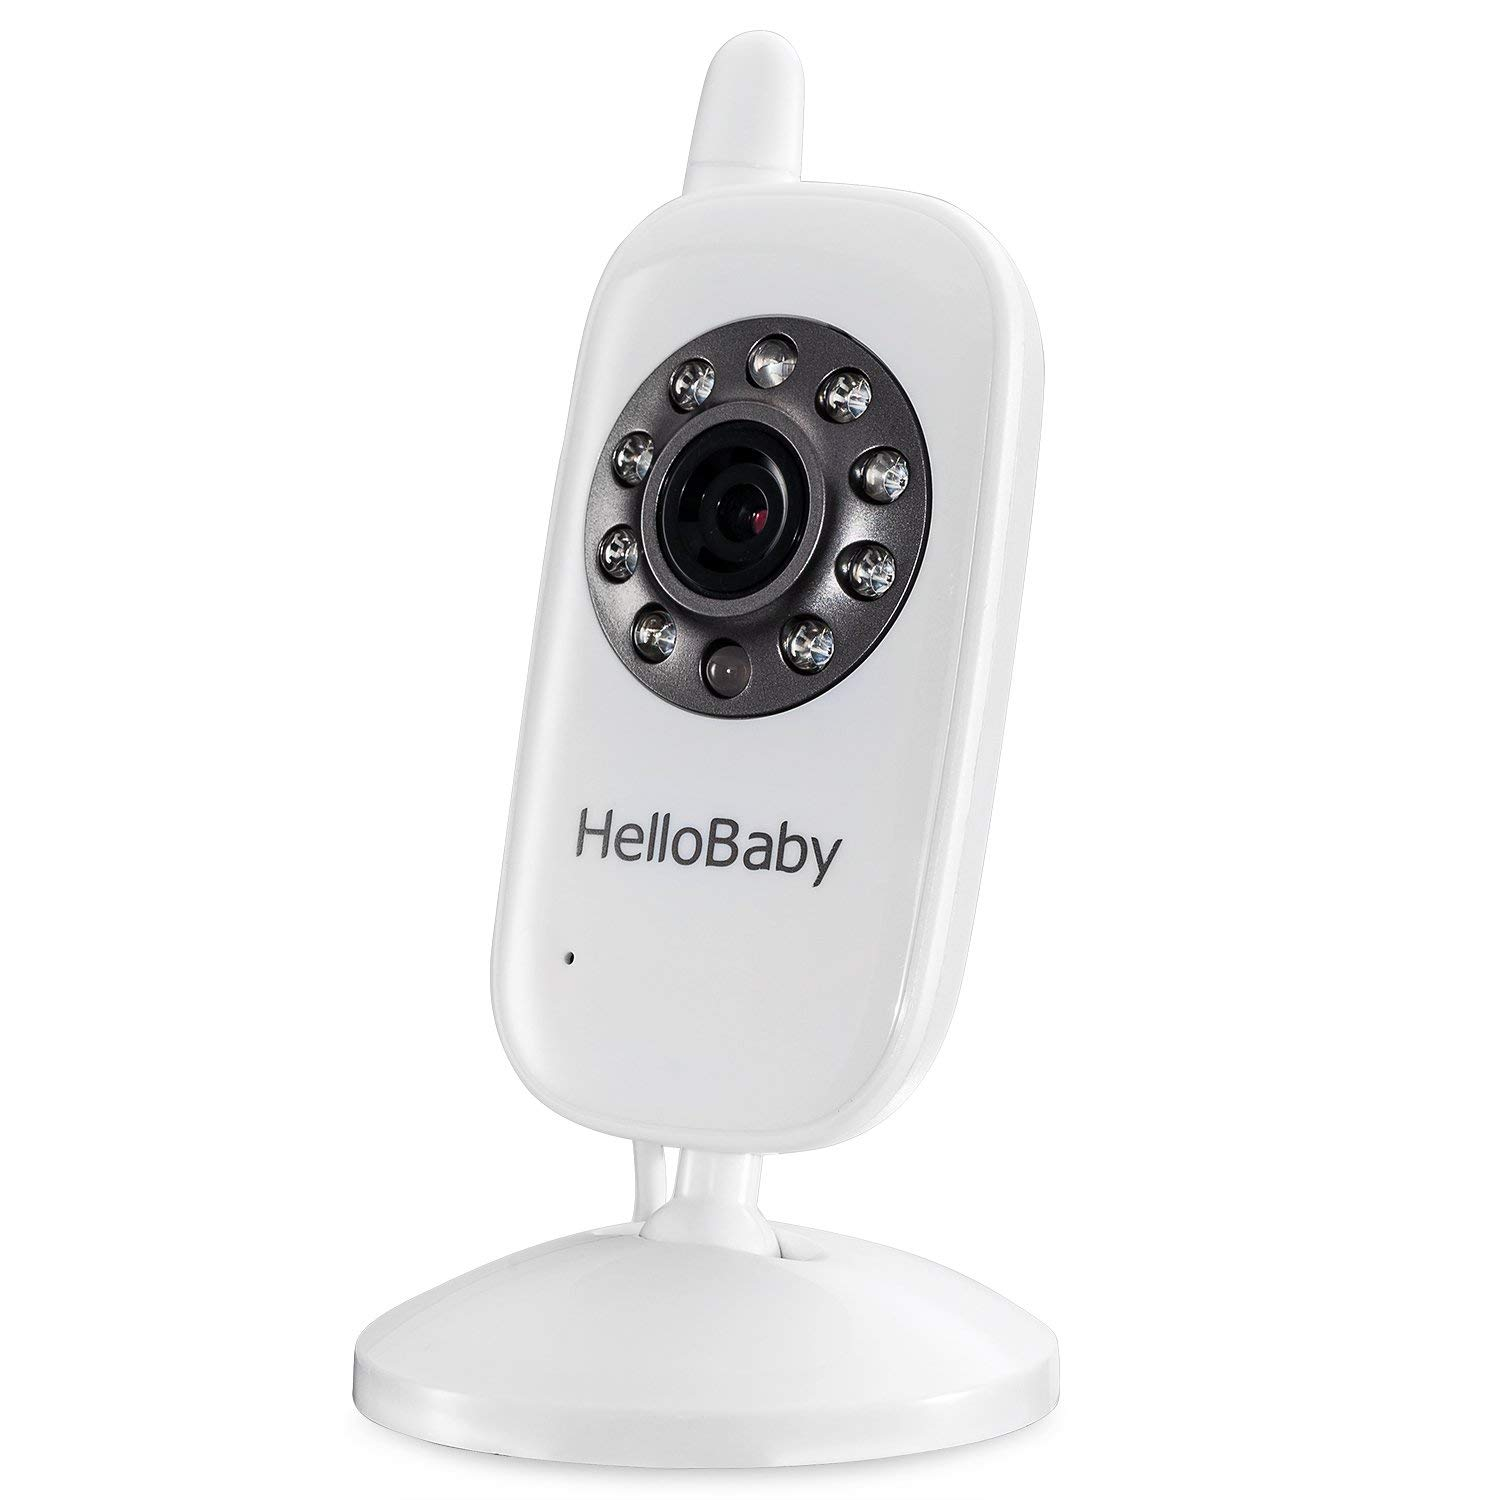 HelloBaby Additional Camera – NOT Compatible with HB65, Baby Unit Add-on Camera for HB32 HB28 HB24 Video Baby Monitor